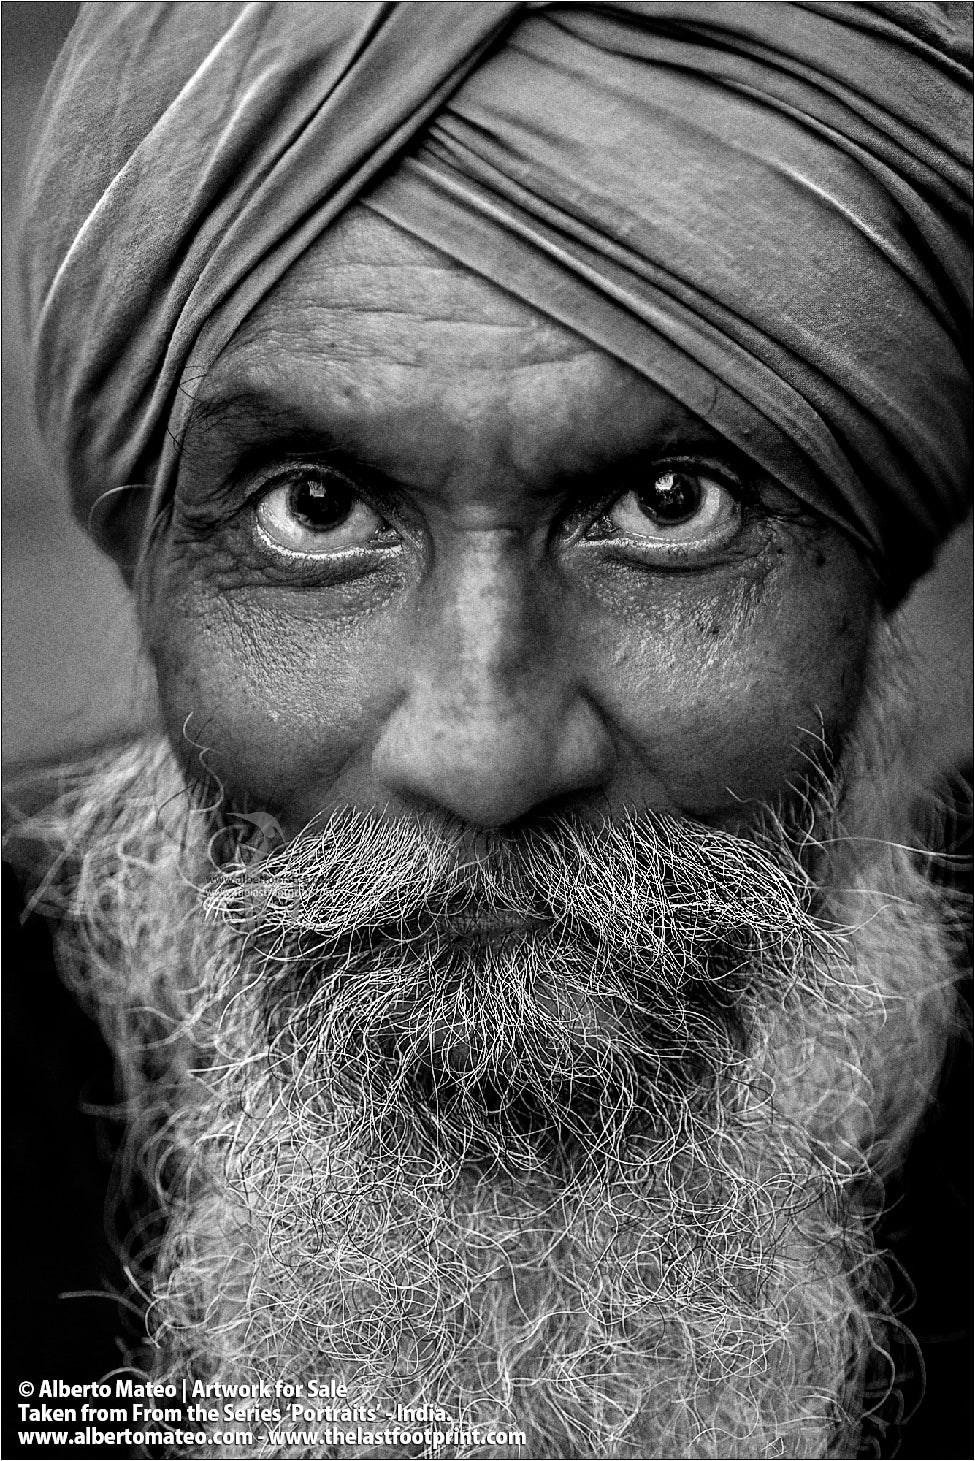 Portrait of Sikh from Amritsar, Bara Bazar, Kolkata, India.